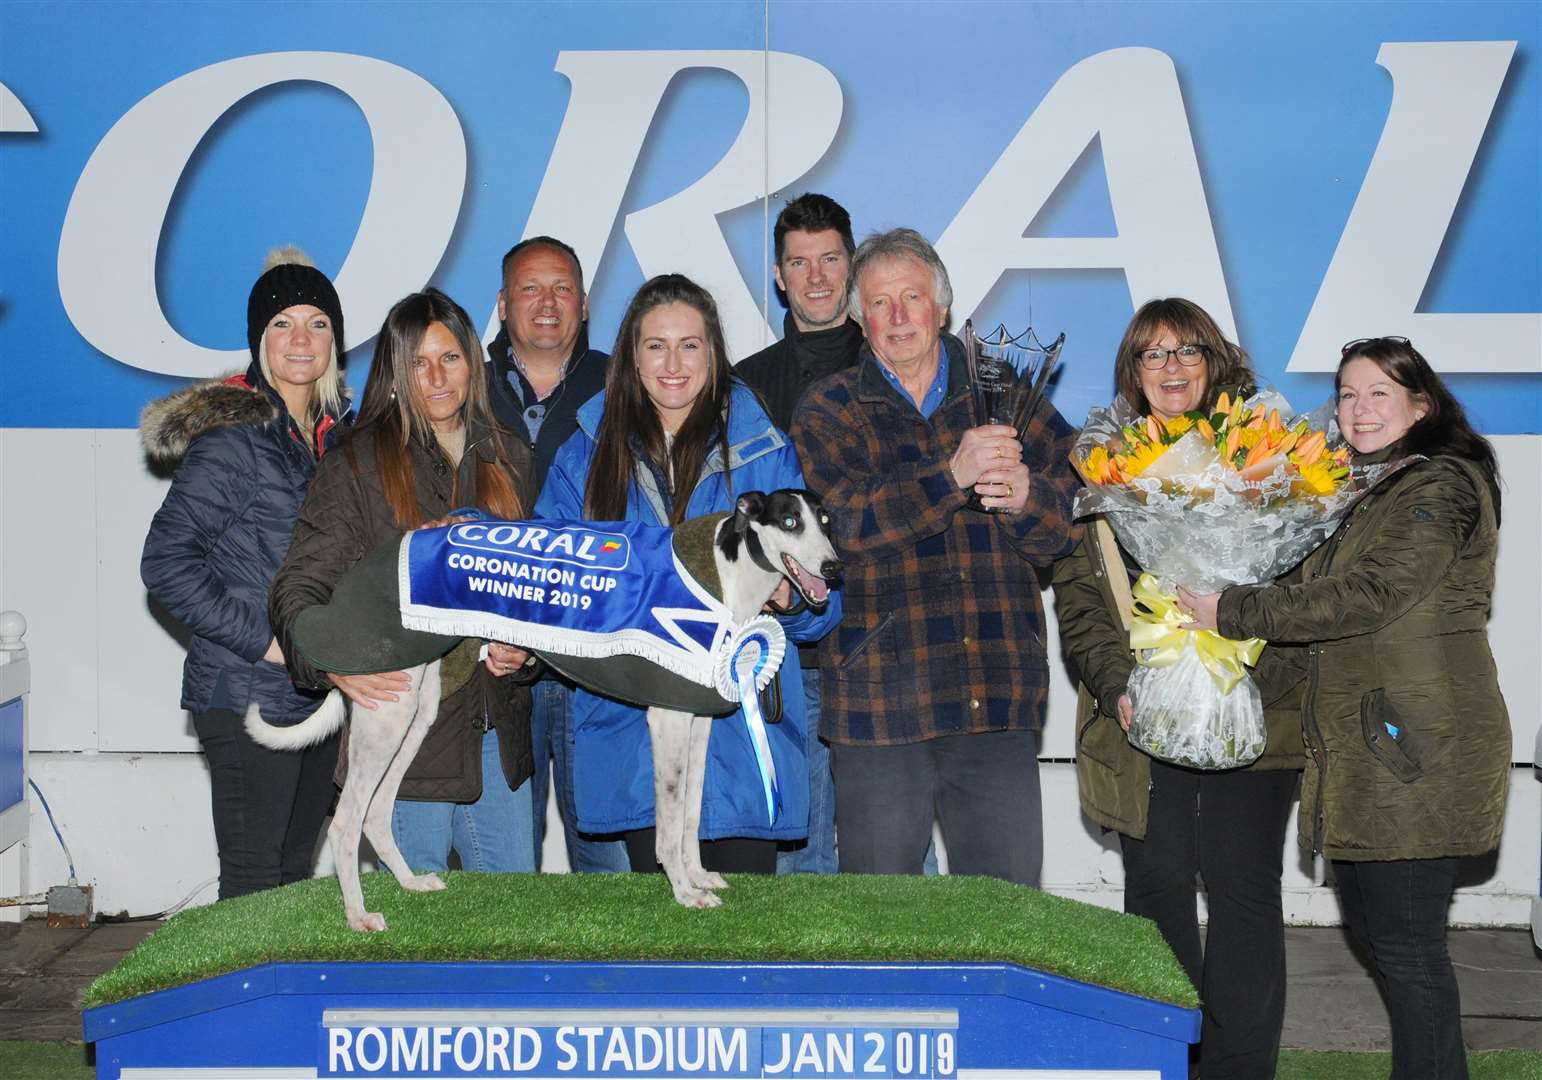 ALL SMILES: Owner Evan Herbert (with trophy), trainer Patrick Janssens (third from left) celebrate their success